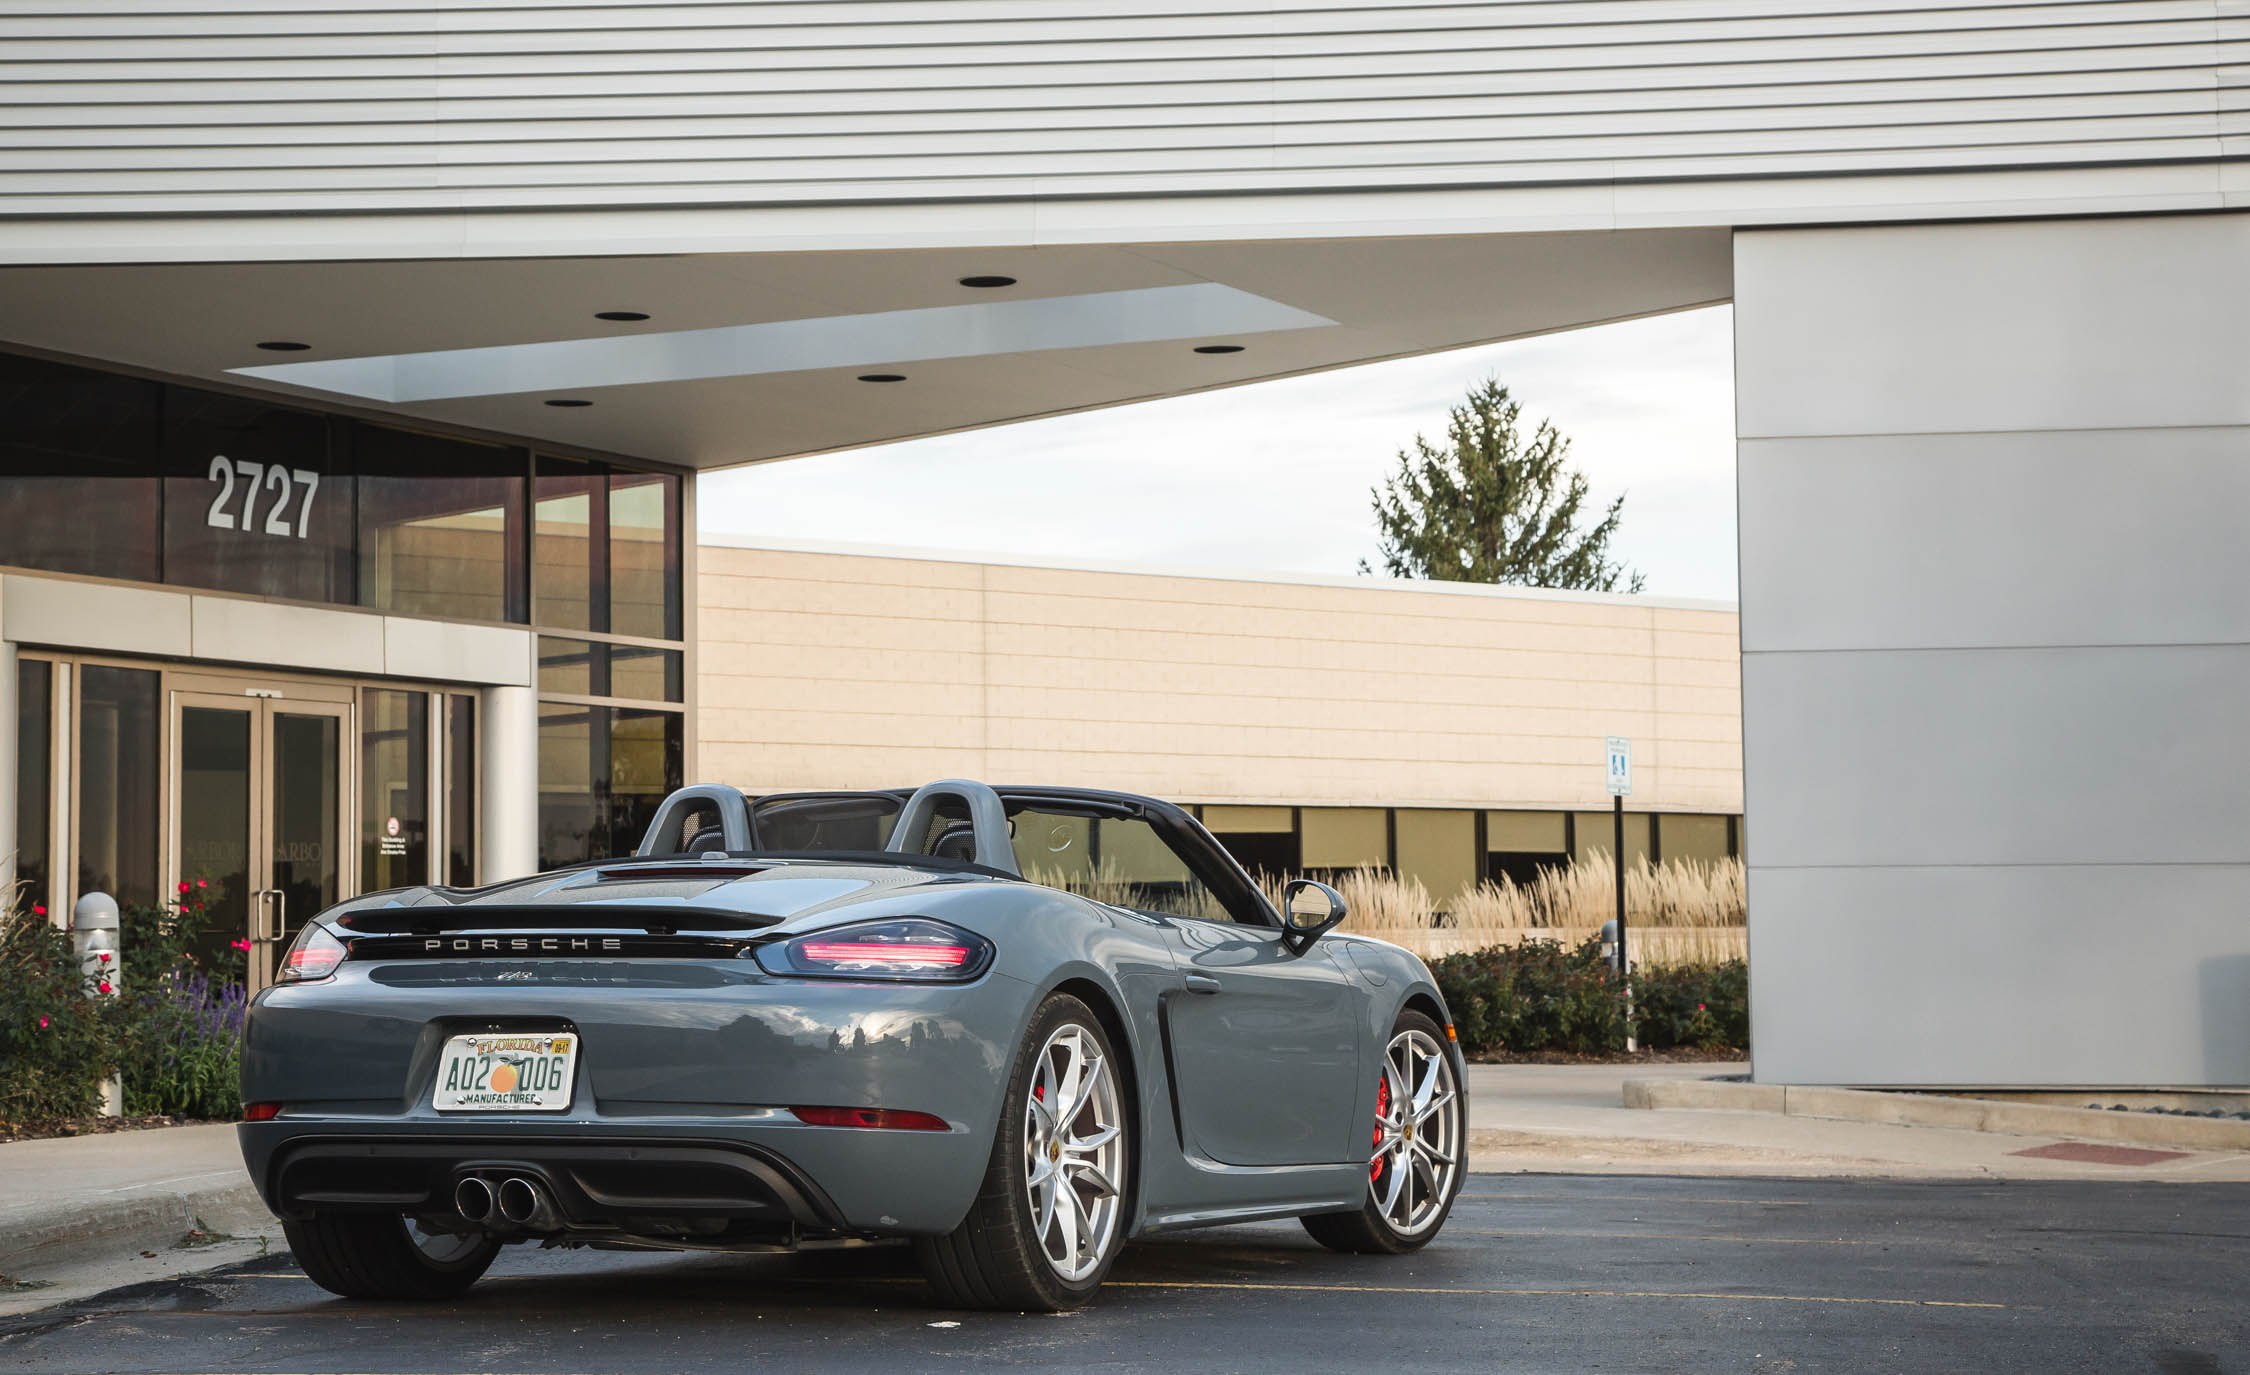 2017 Porsche 718 Boxster S Exterior Rear And Side (View 23 of 71)